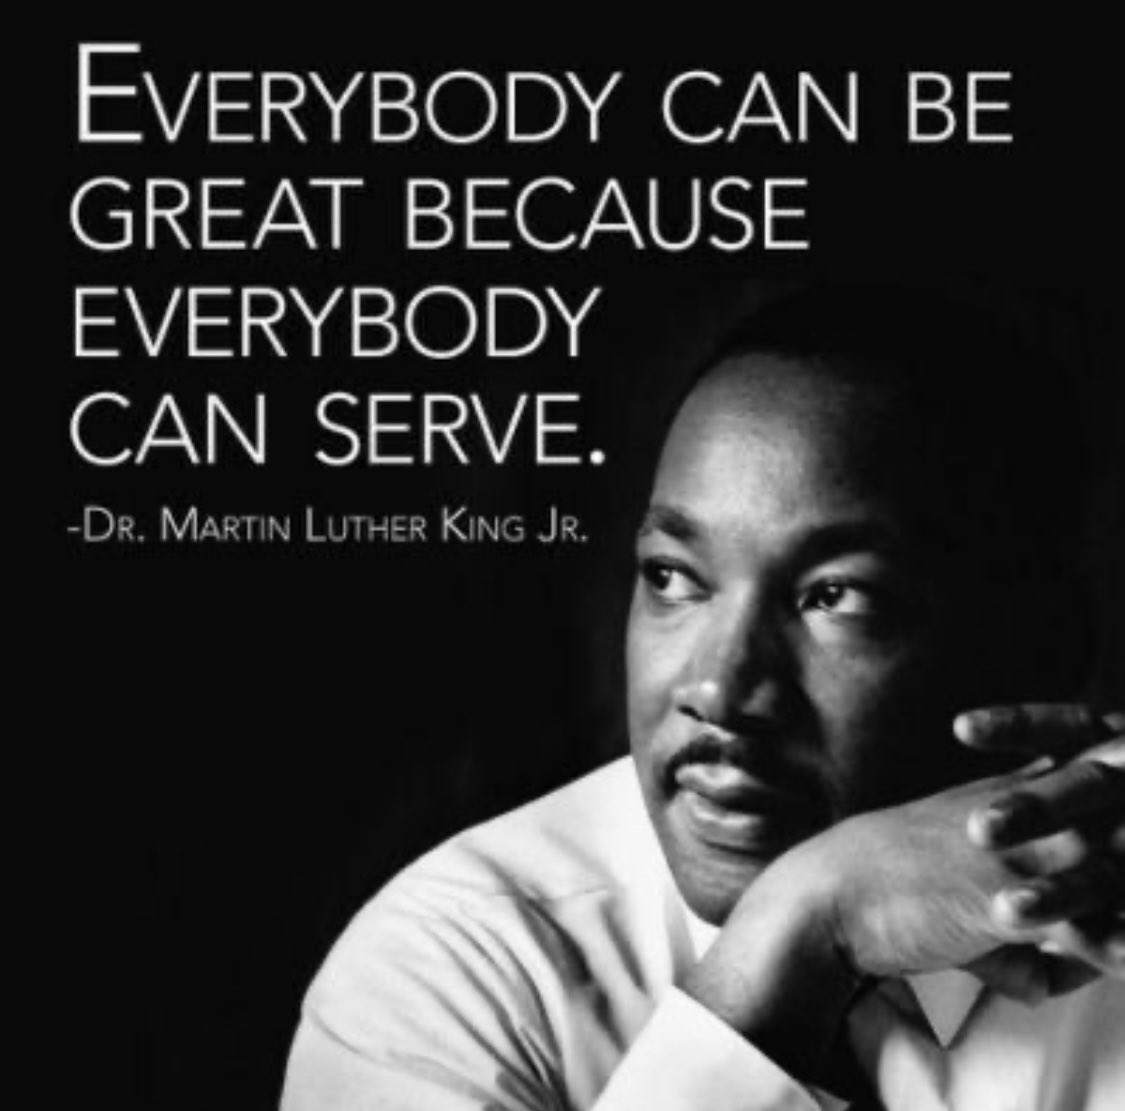 In celebration of the life and legacy of Dr. Martin Luther King, Jr. #MLKDay